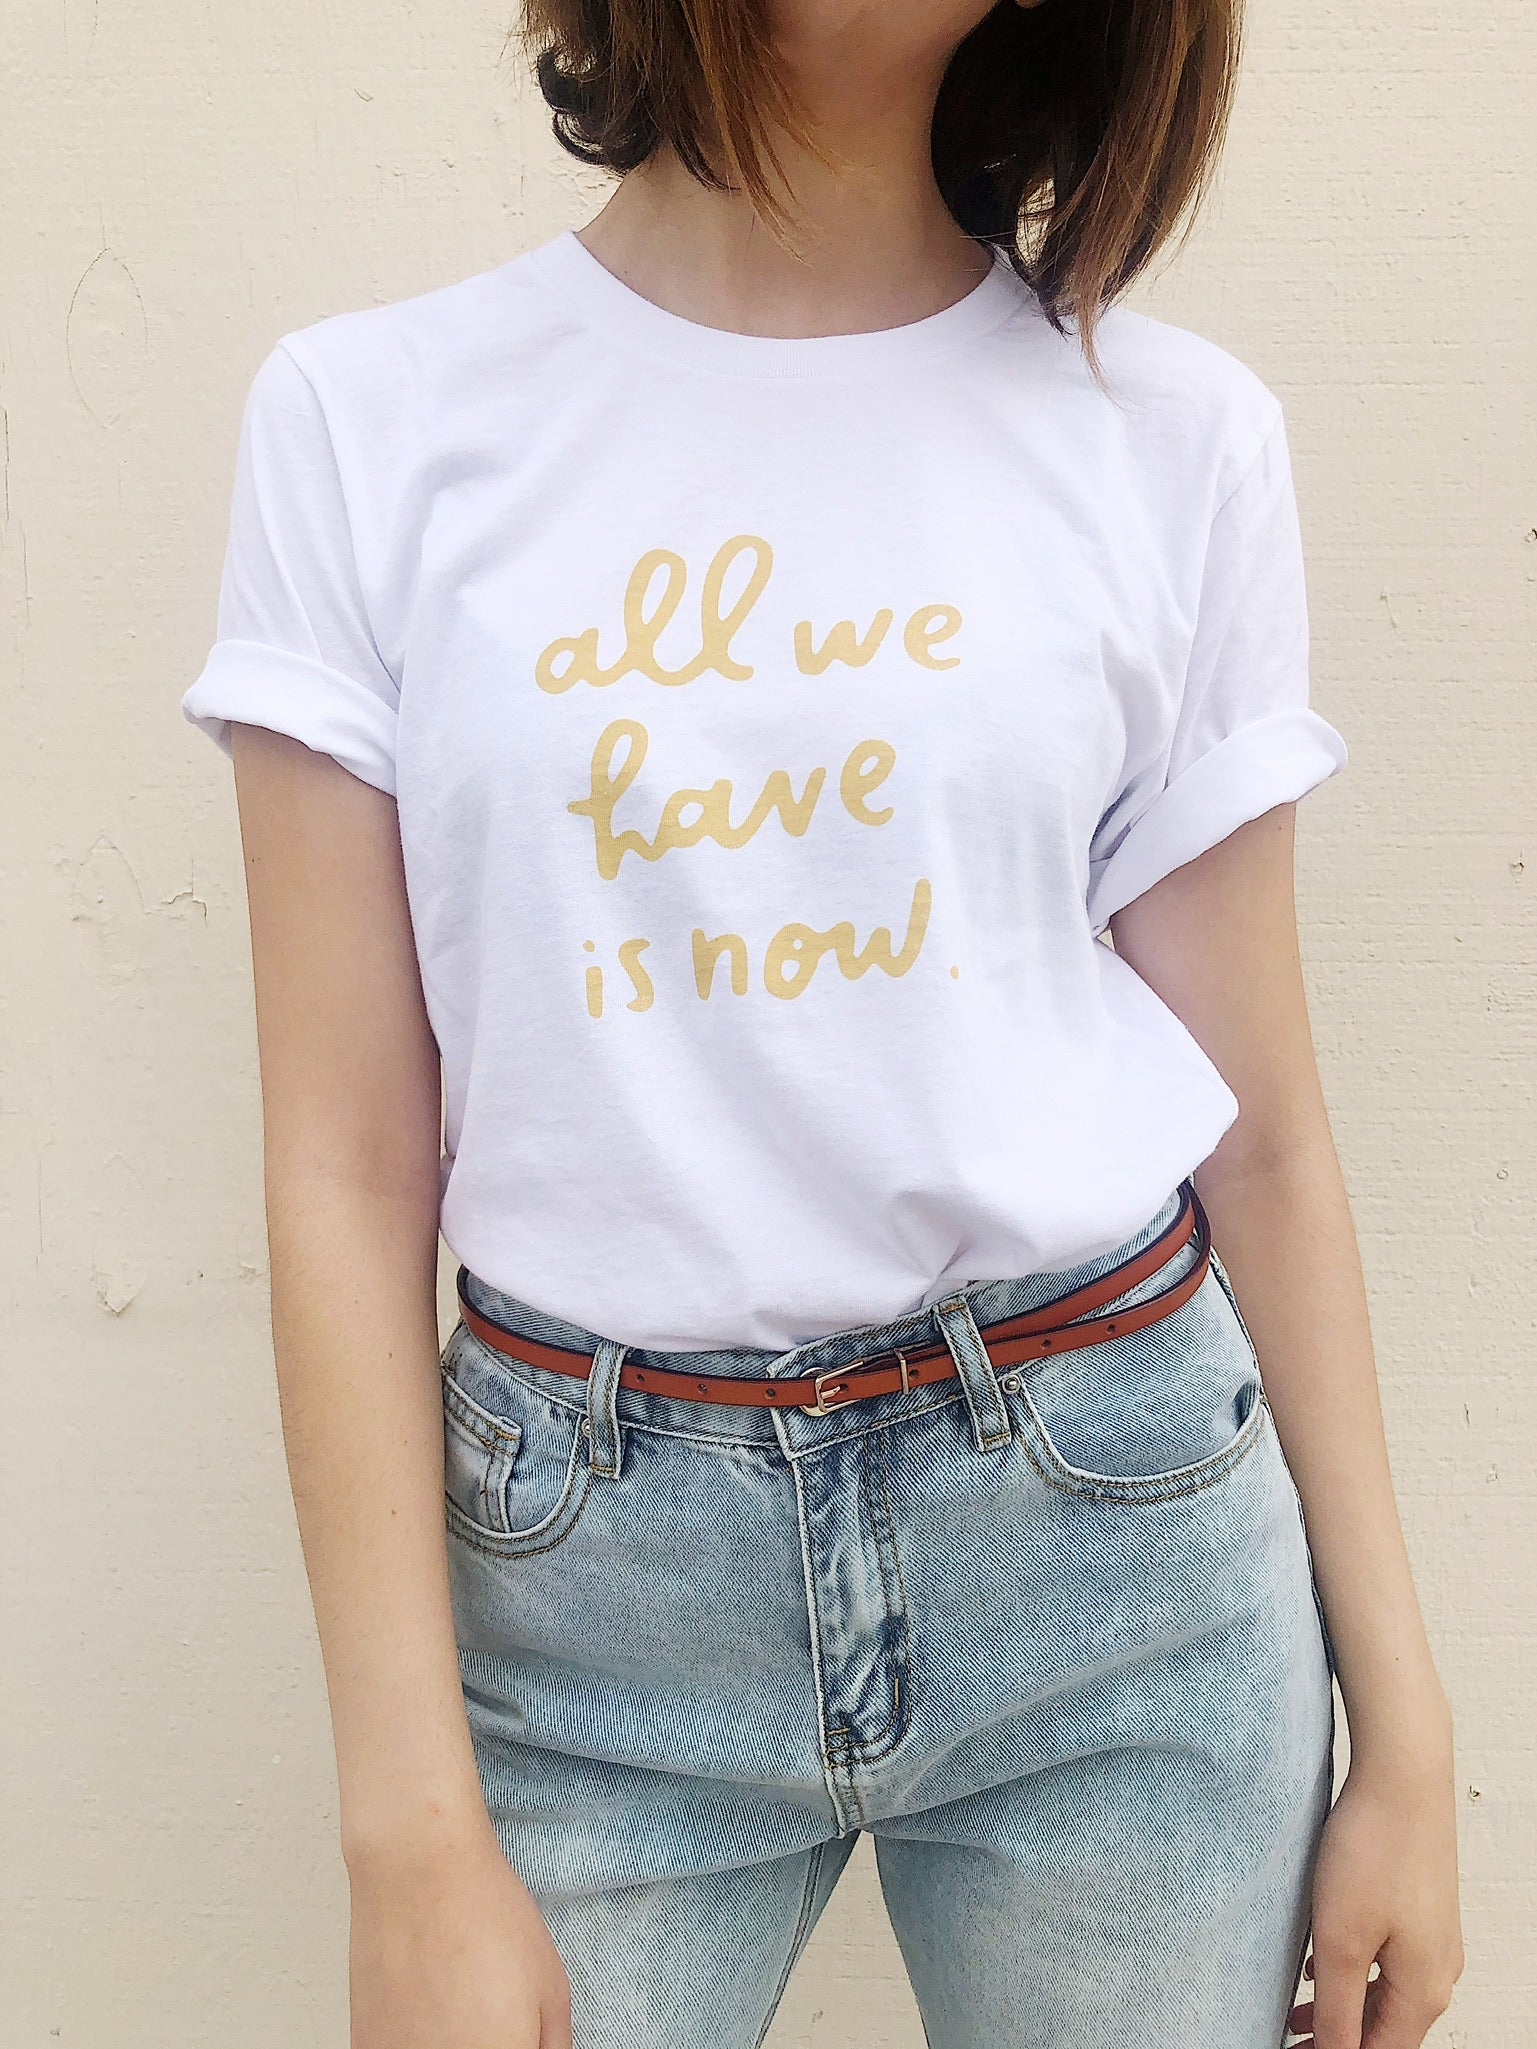 The All We Have is Now Graphic Tee